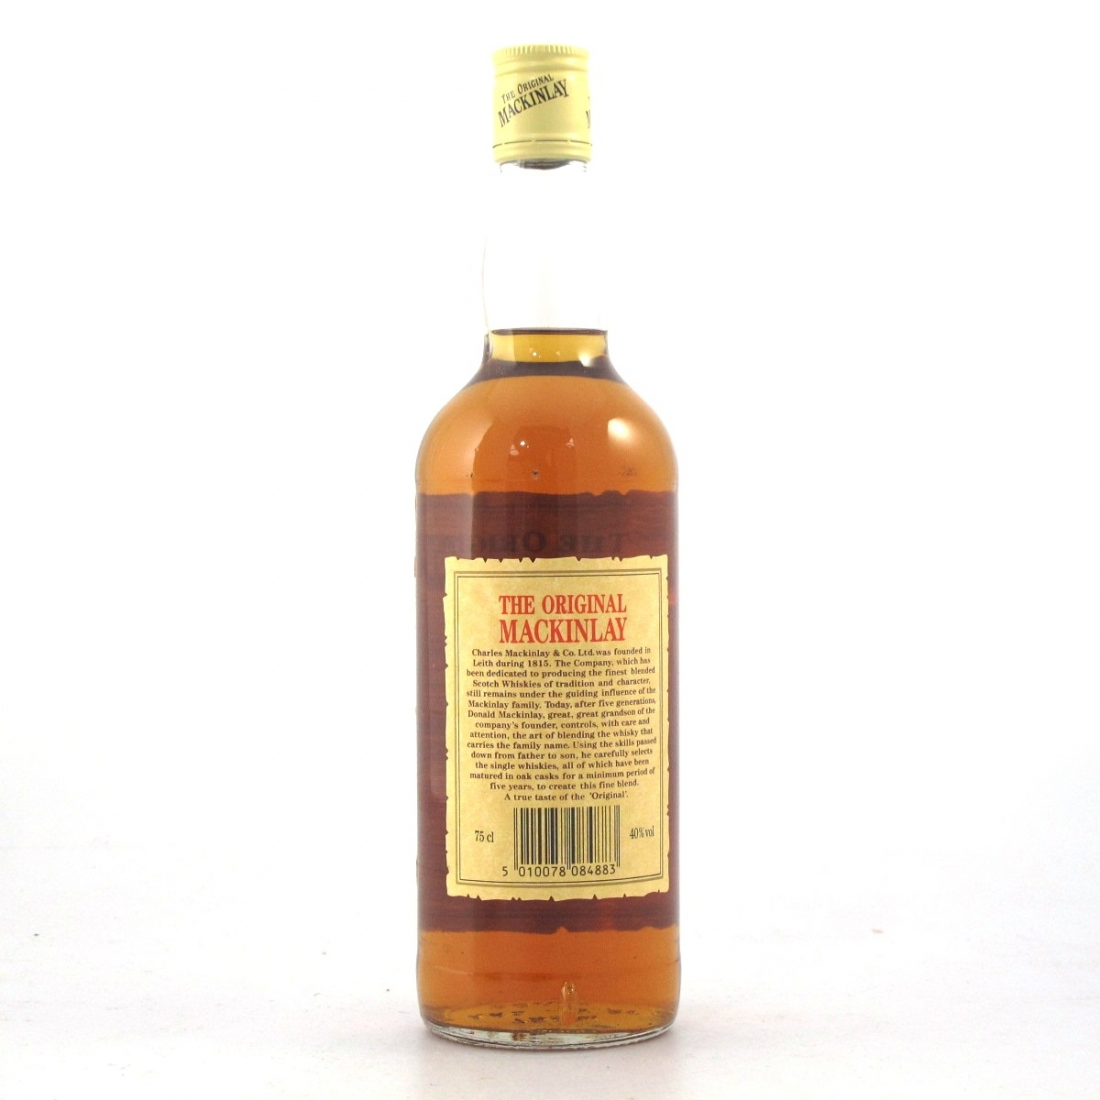 Mackinlay's Finest Old Scotch Whisky 1980s